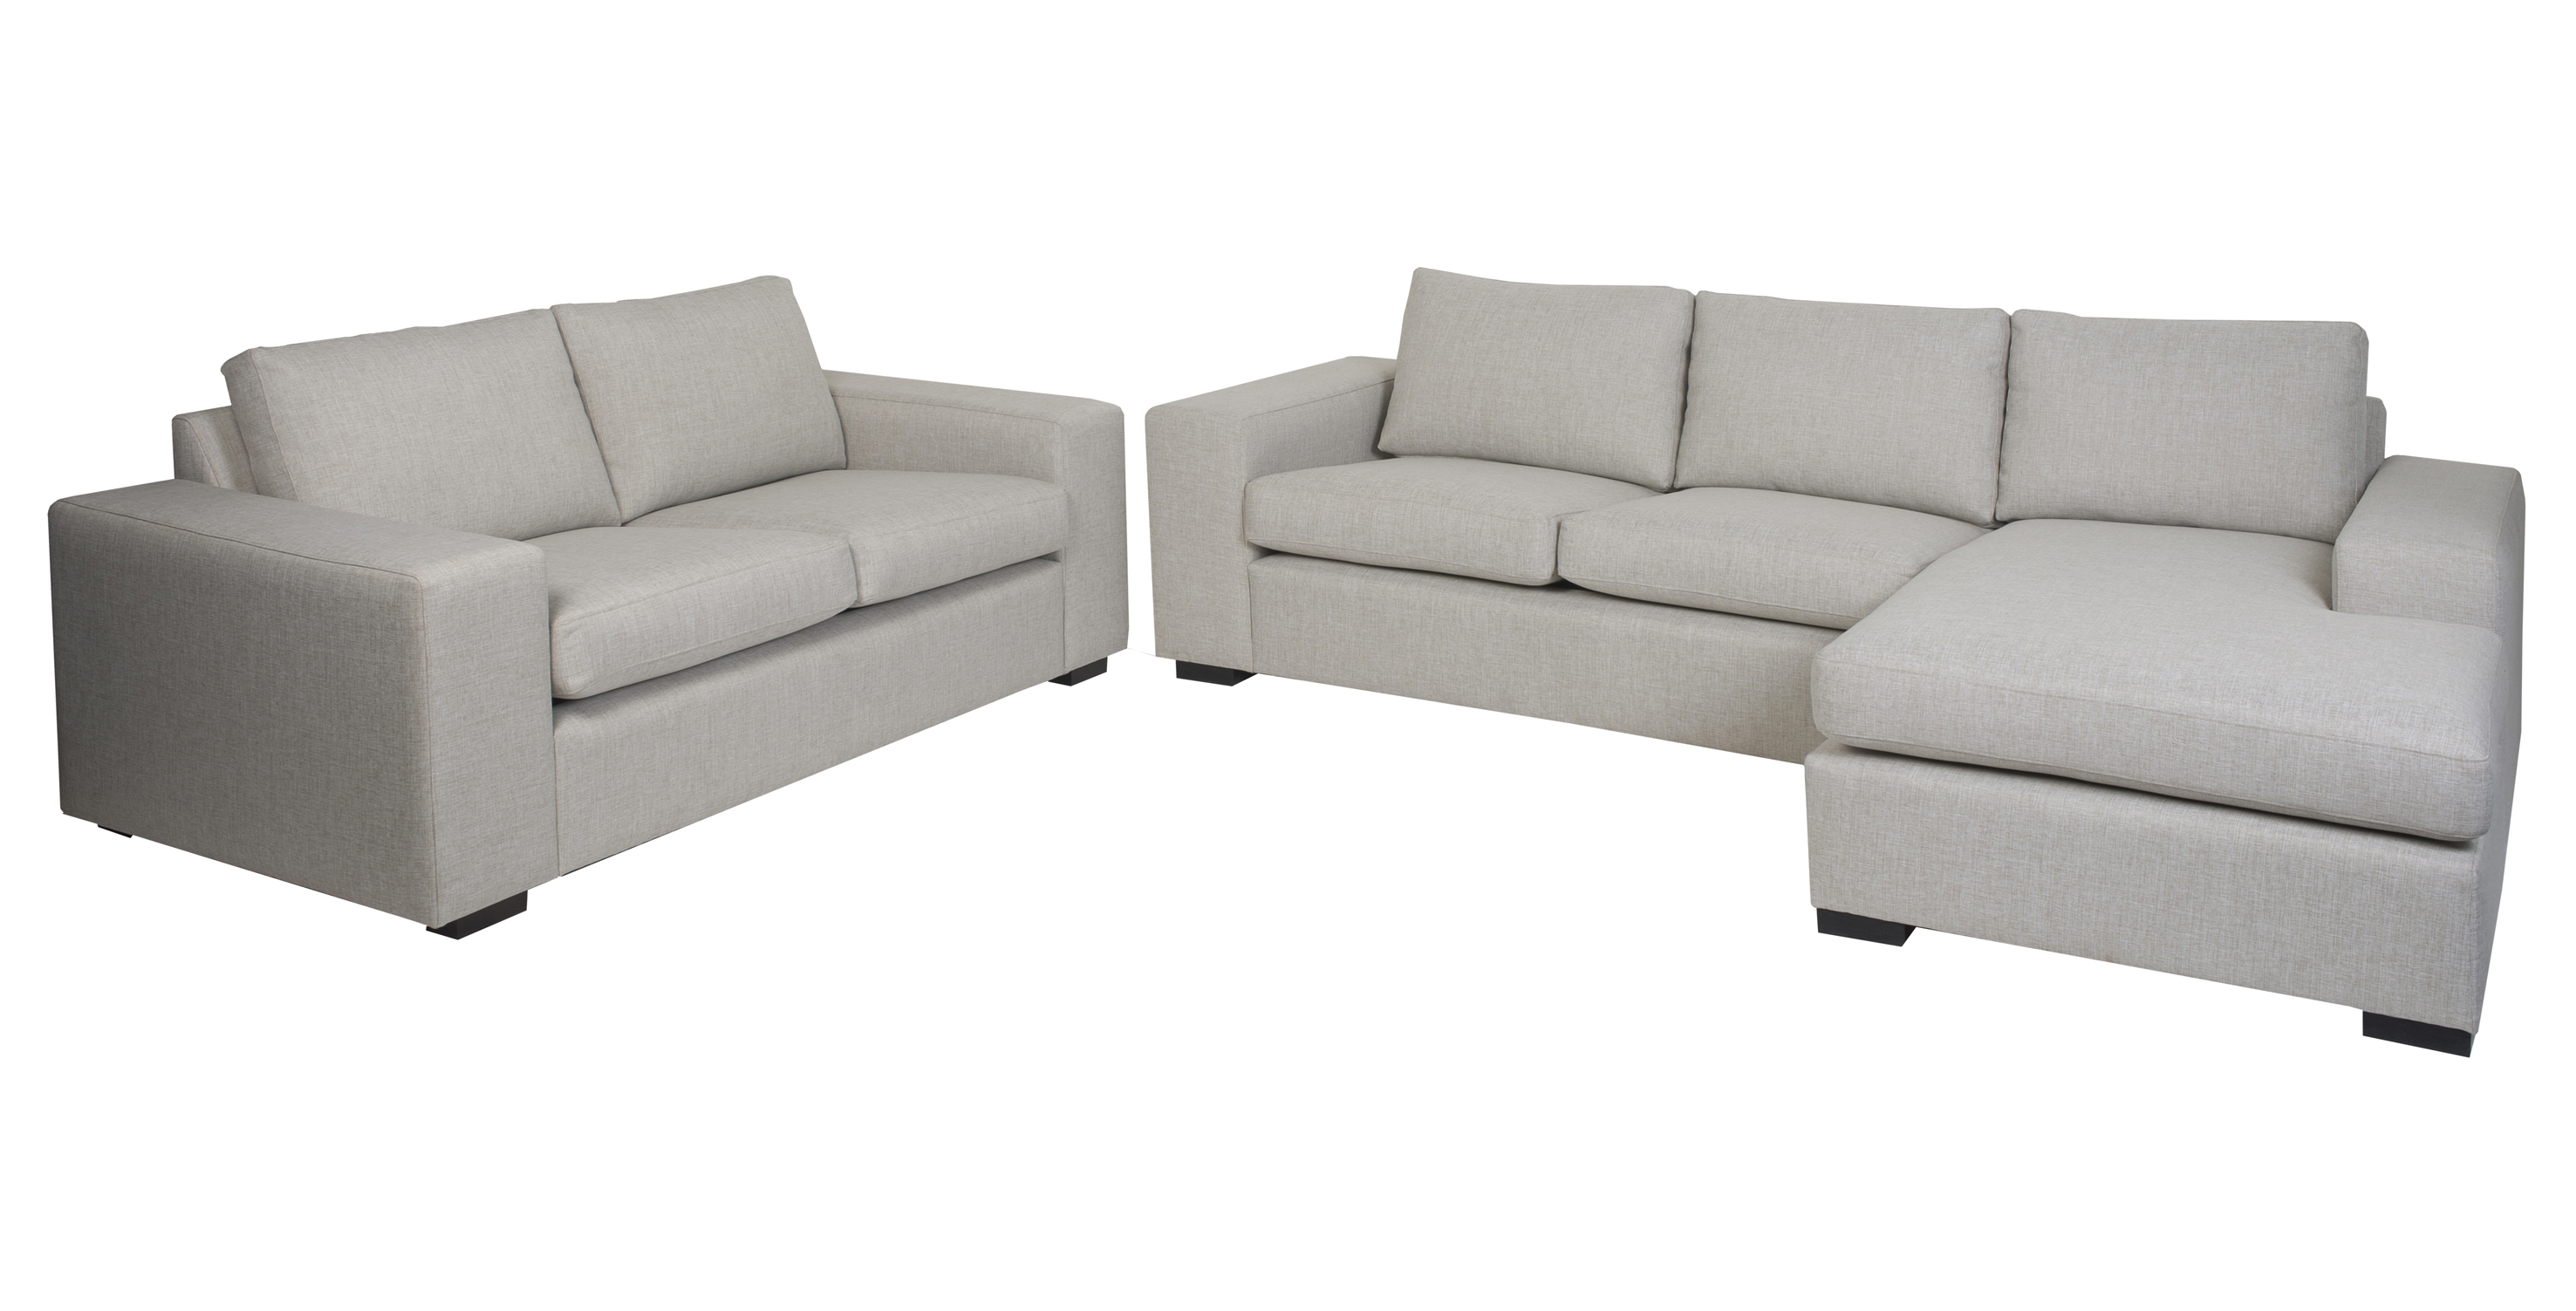 Lounge Sofa Sydney Quality Affordable Sofa Beds Known For Lounges Sydney